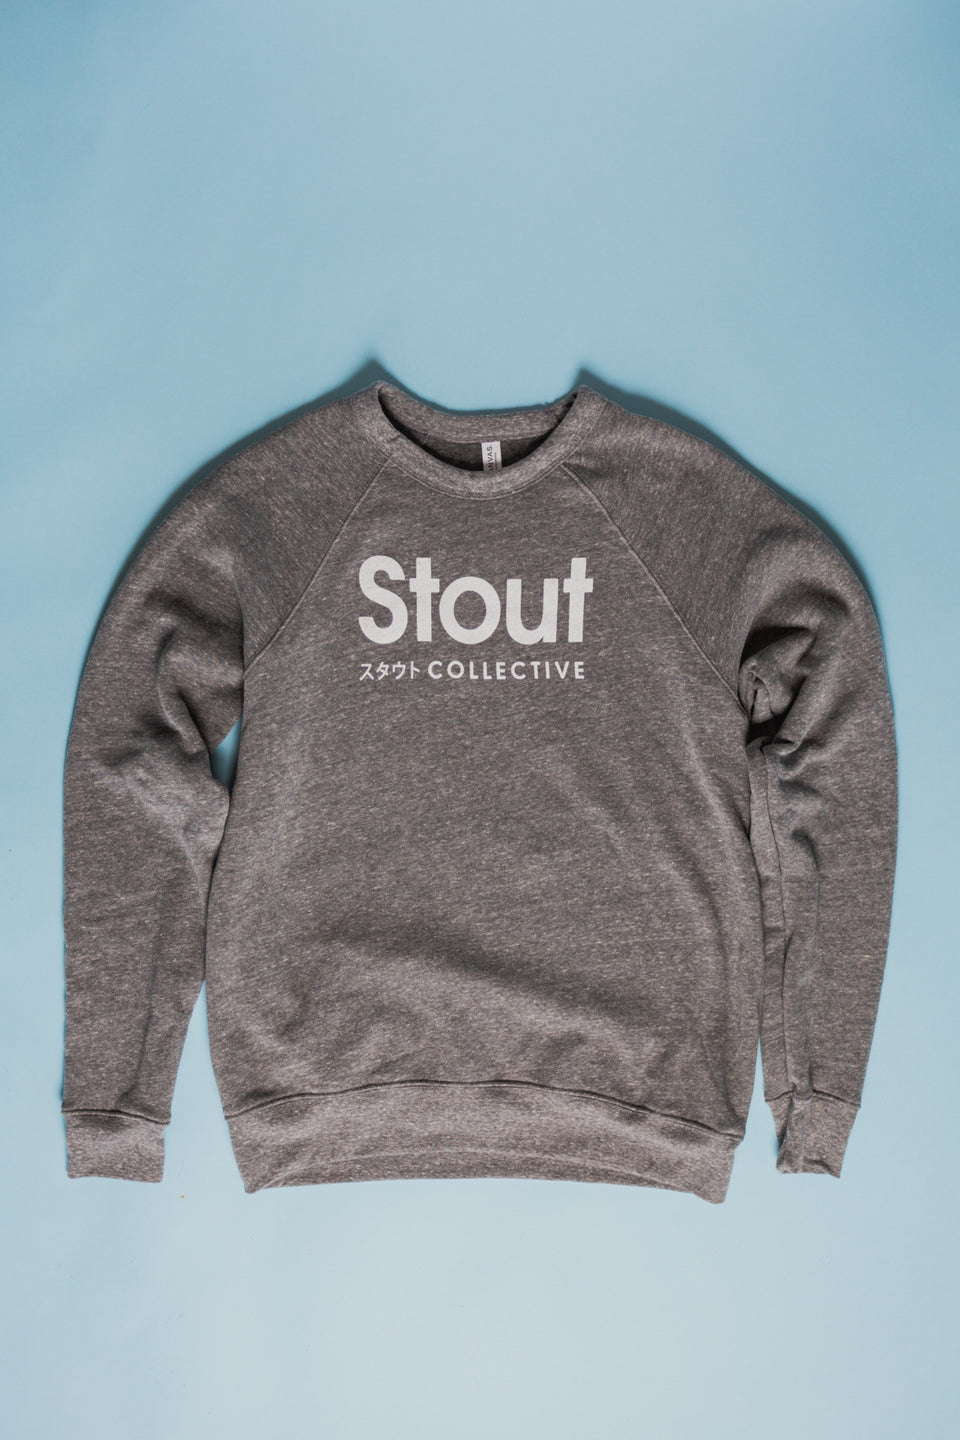 The Softest Crewneck Sweatshirt in Chicago by Stout Collective